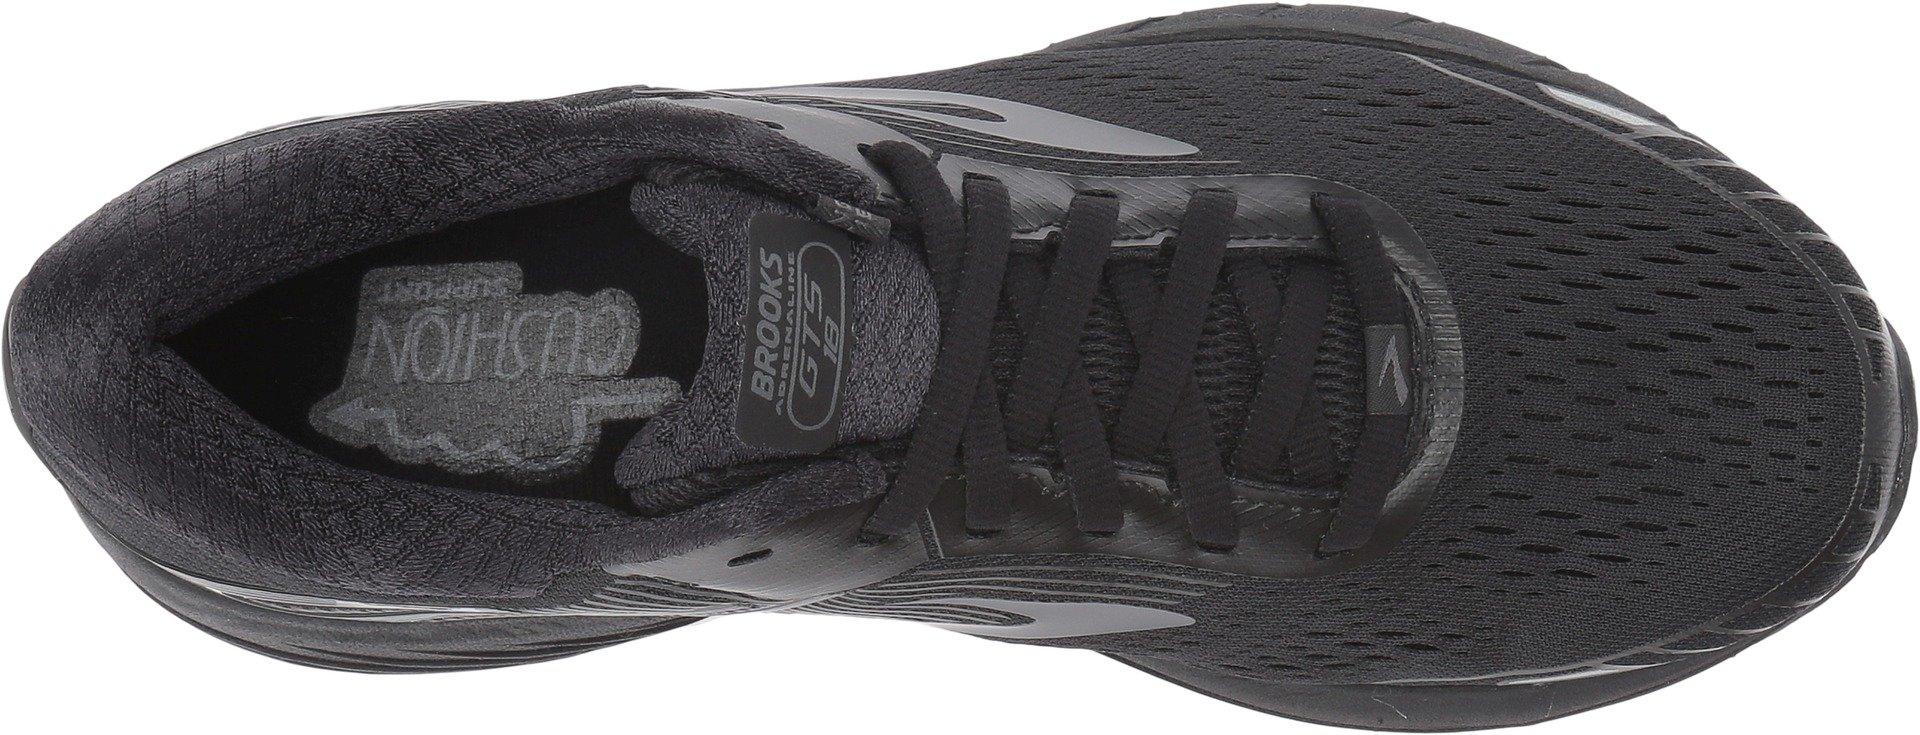 Brooks Women's Adrenaline GTS 18 Black/Black 7.5 B US by Brooks (Image #2)